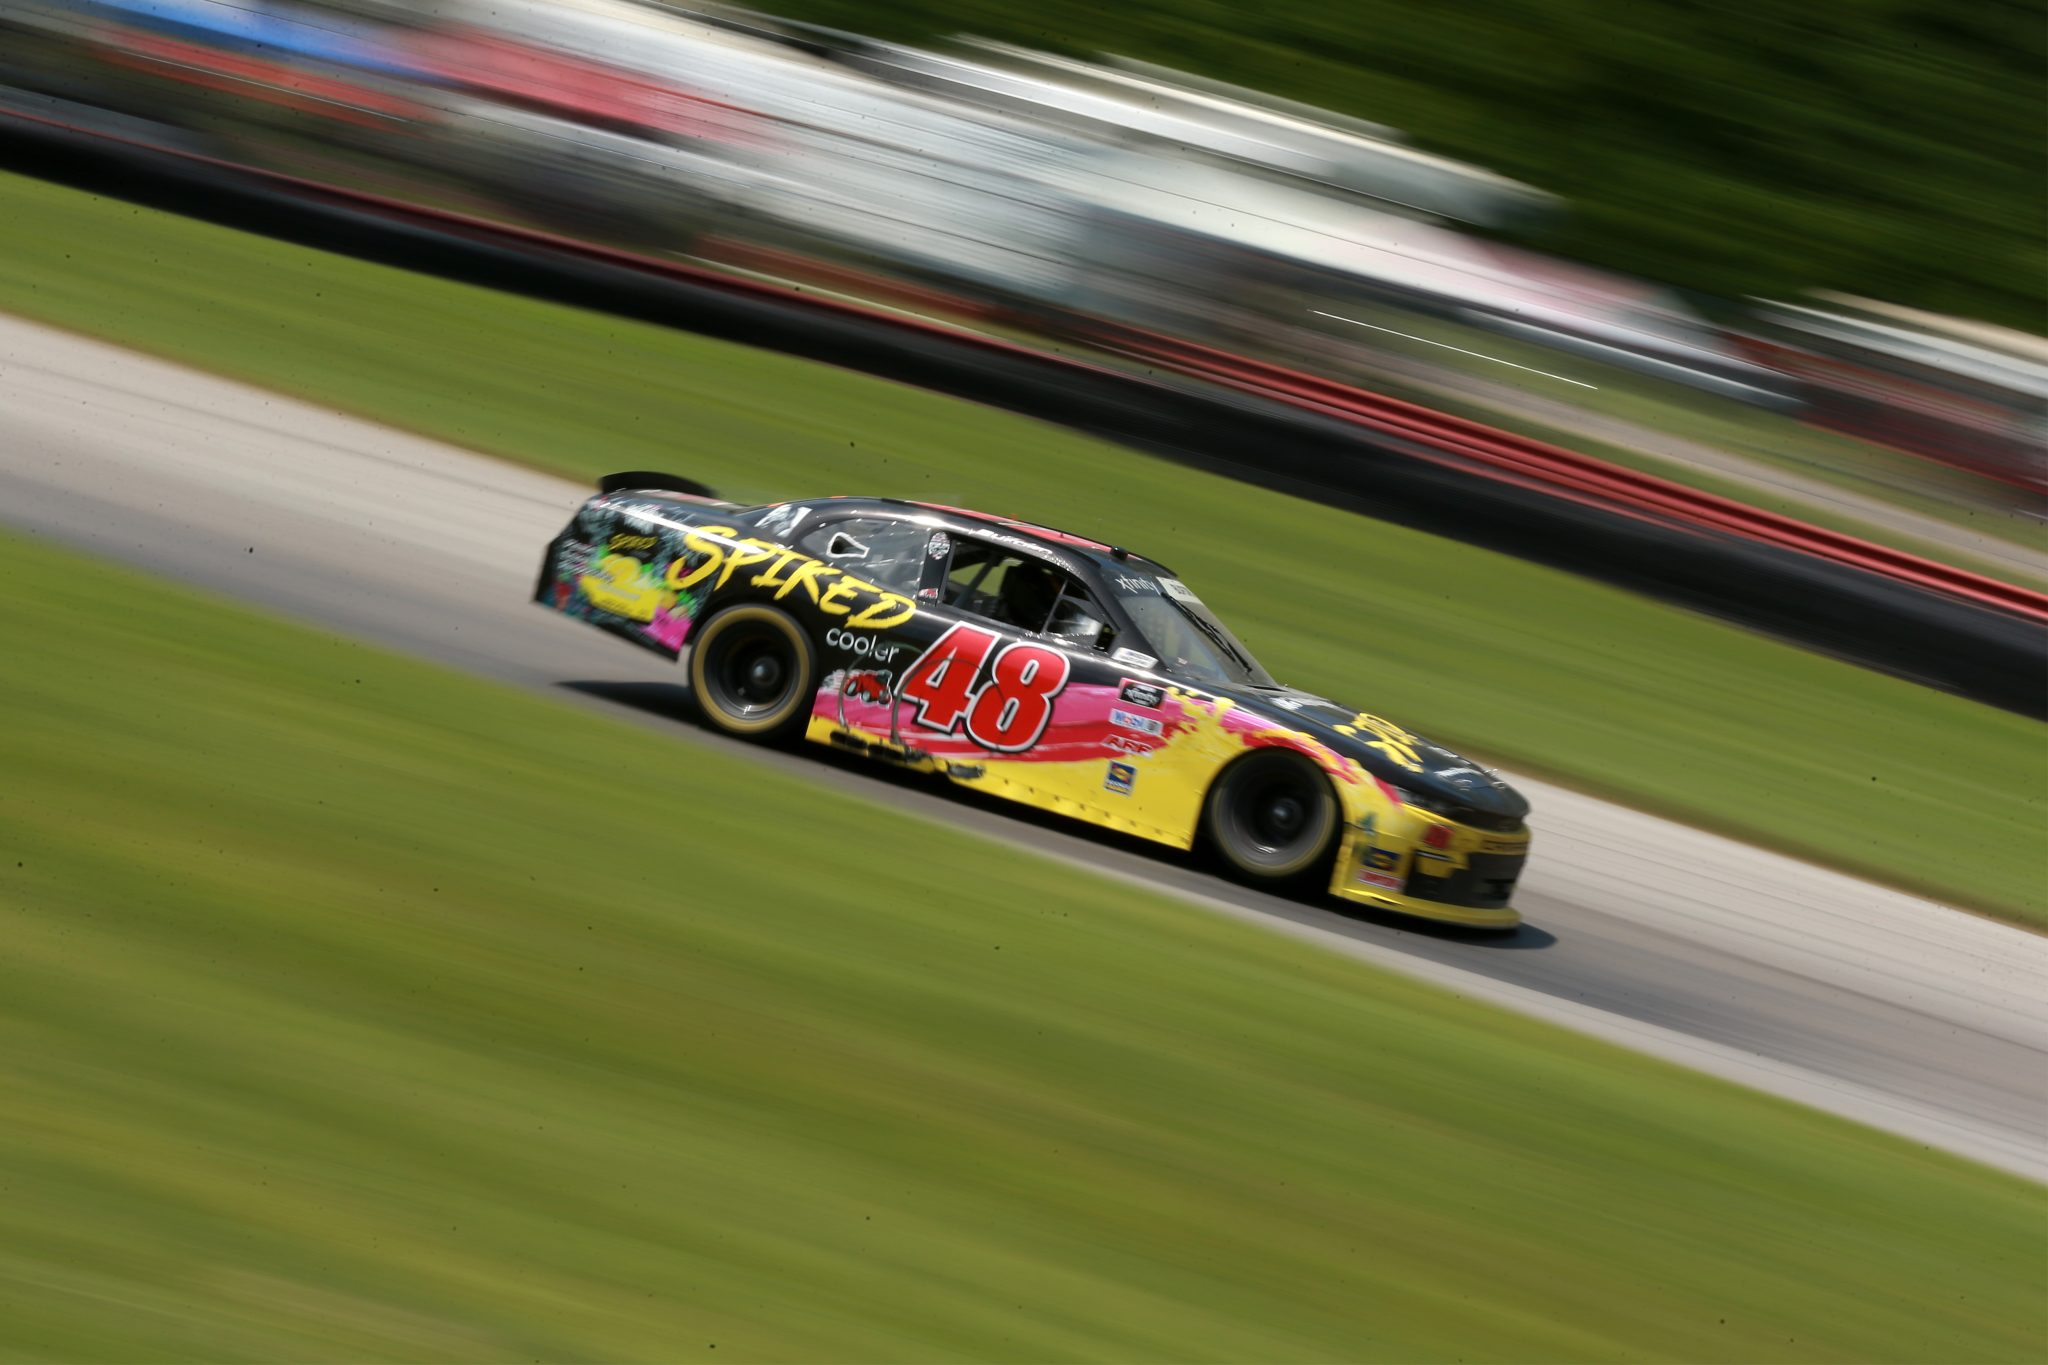 LEXINGTON, OHIO - JUNE 05: Jade Buford, driver of the #48 Big Machine Spiked Coolers Chevrolet, drives during the NASCAR Xfinity Series B&L Transport 170 at Mid-Ohio Sports Car Course on June 05, 2021 in Lexington, Ohio. (Photo by Sean Gardner/Getty Images) | Getty Images